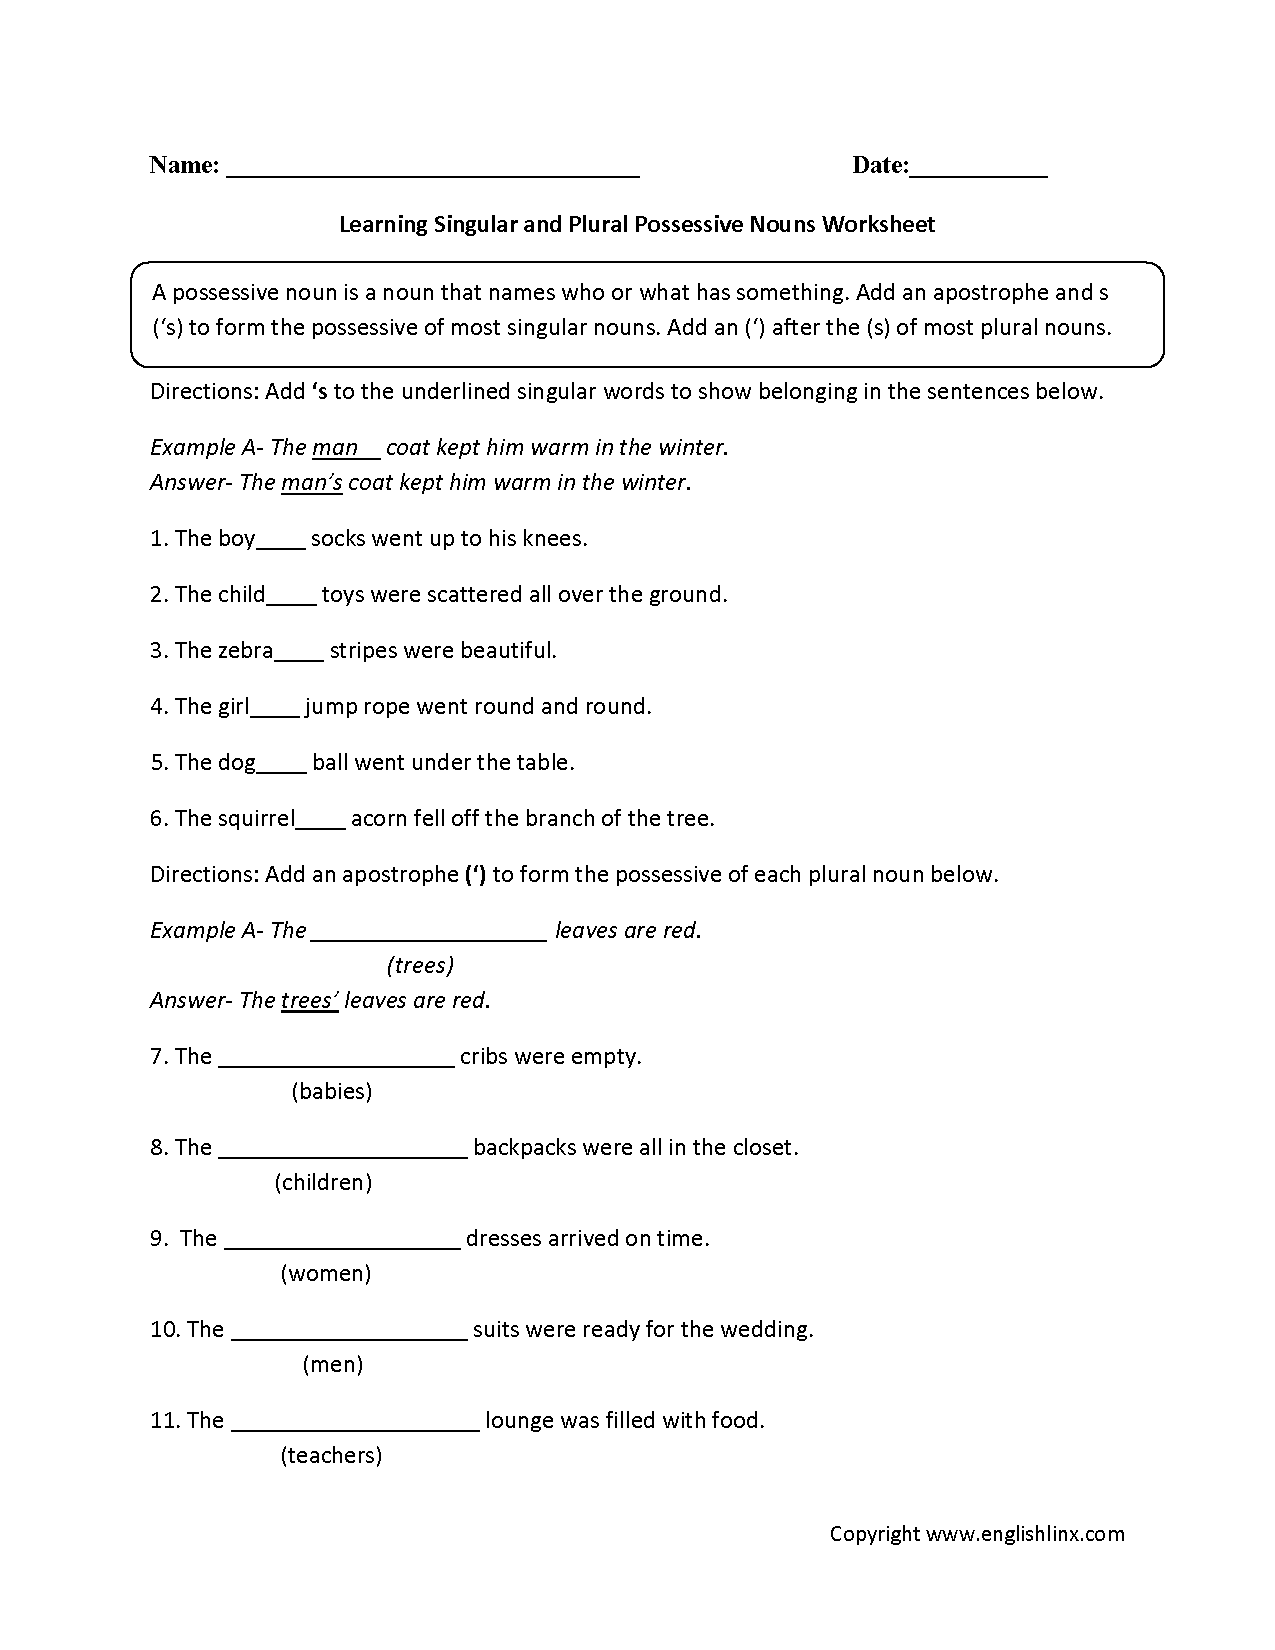 Printables Singular Possessive Nouns Worksheet nouns worksheets possessive learning singular and plural worksheet